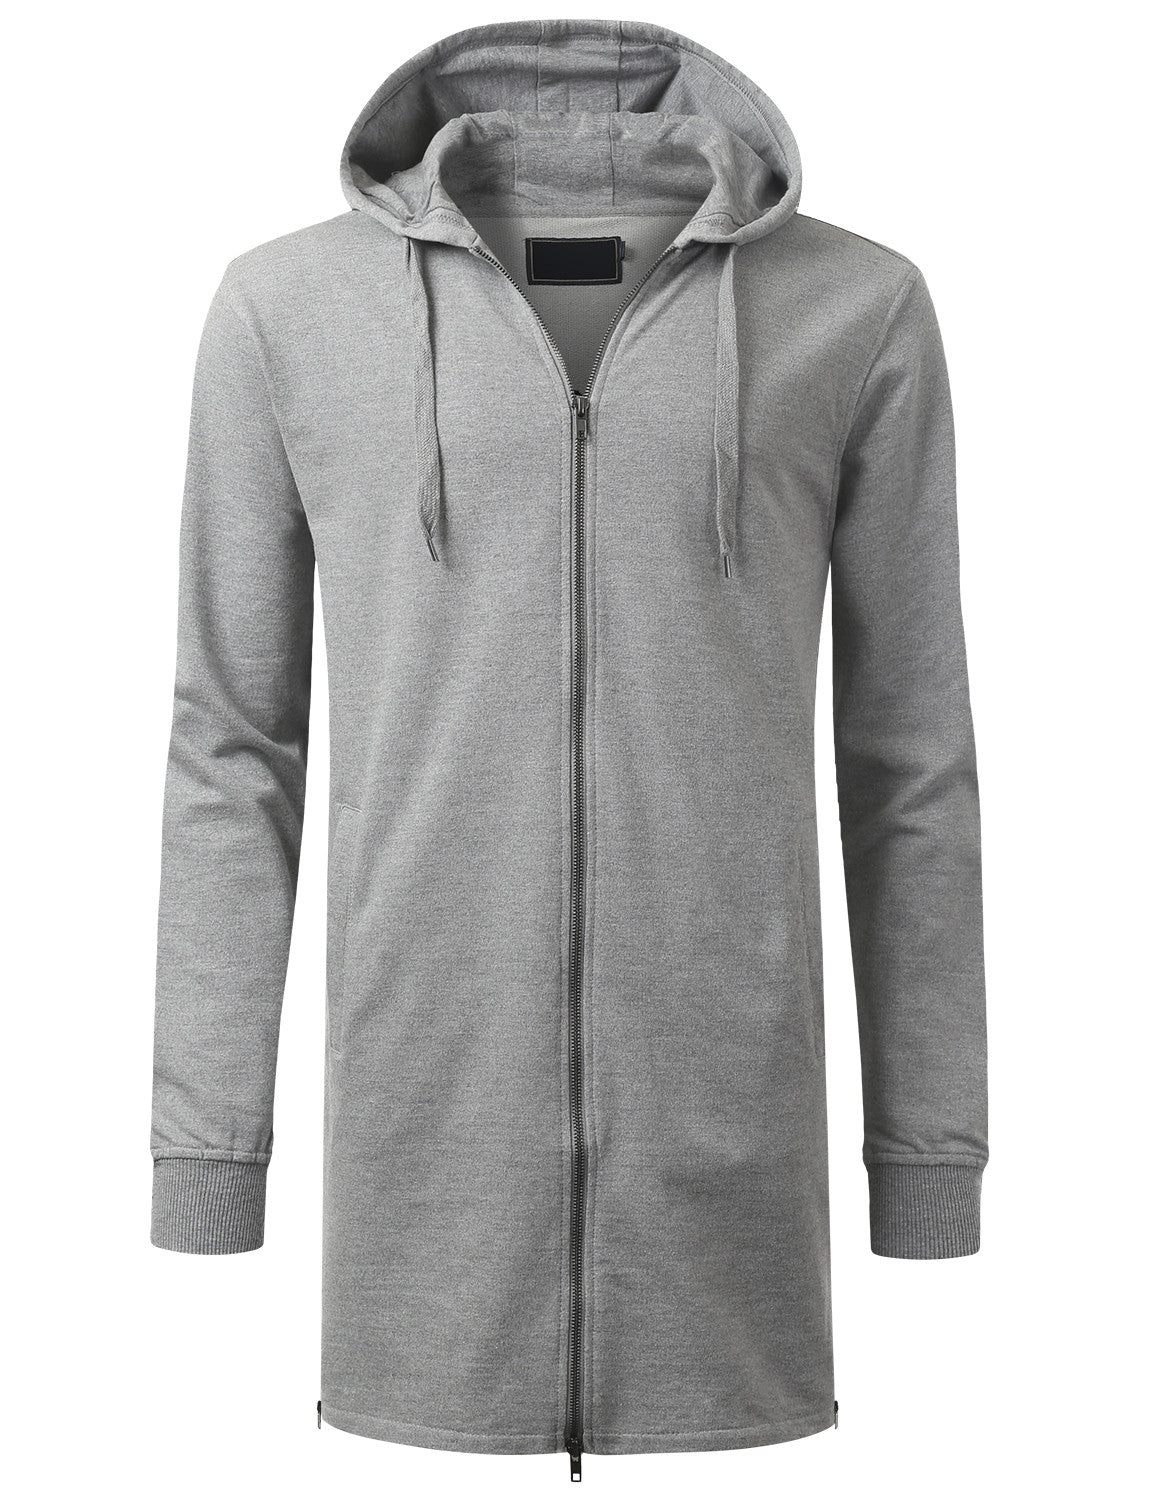 HGRAY French Terry Longline Hoodie Jacket - URBANCREWS